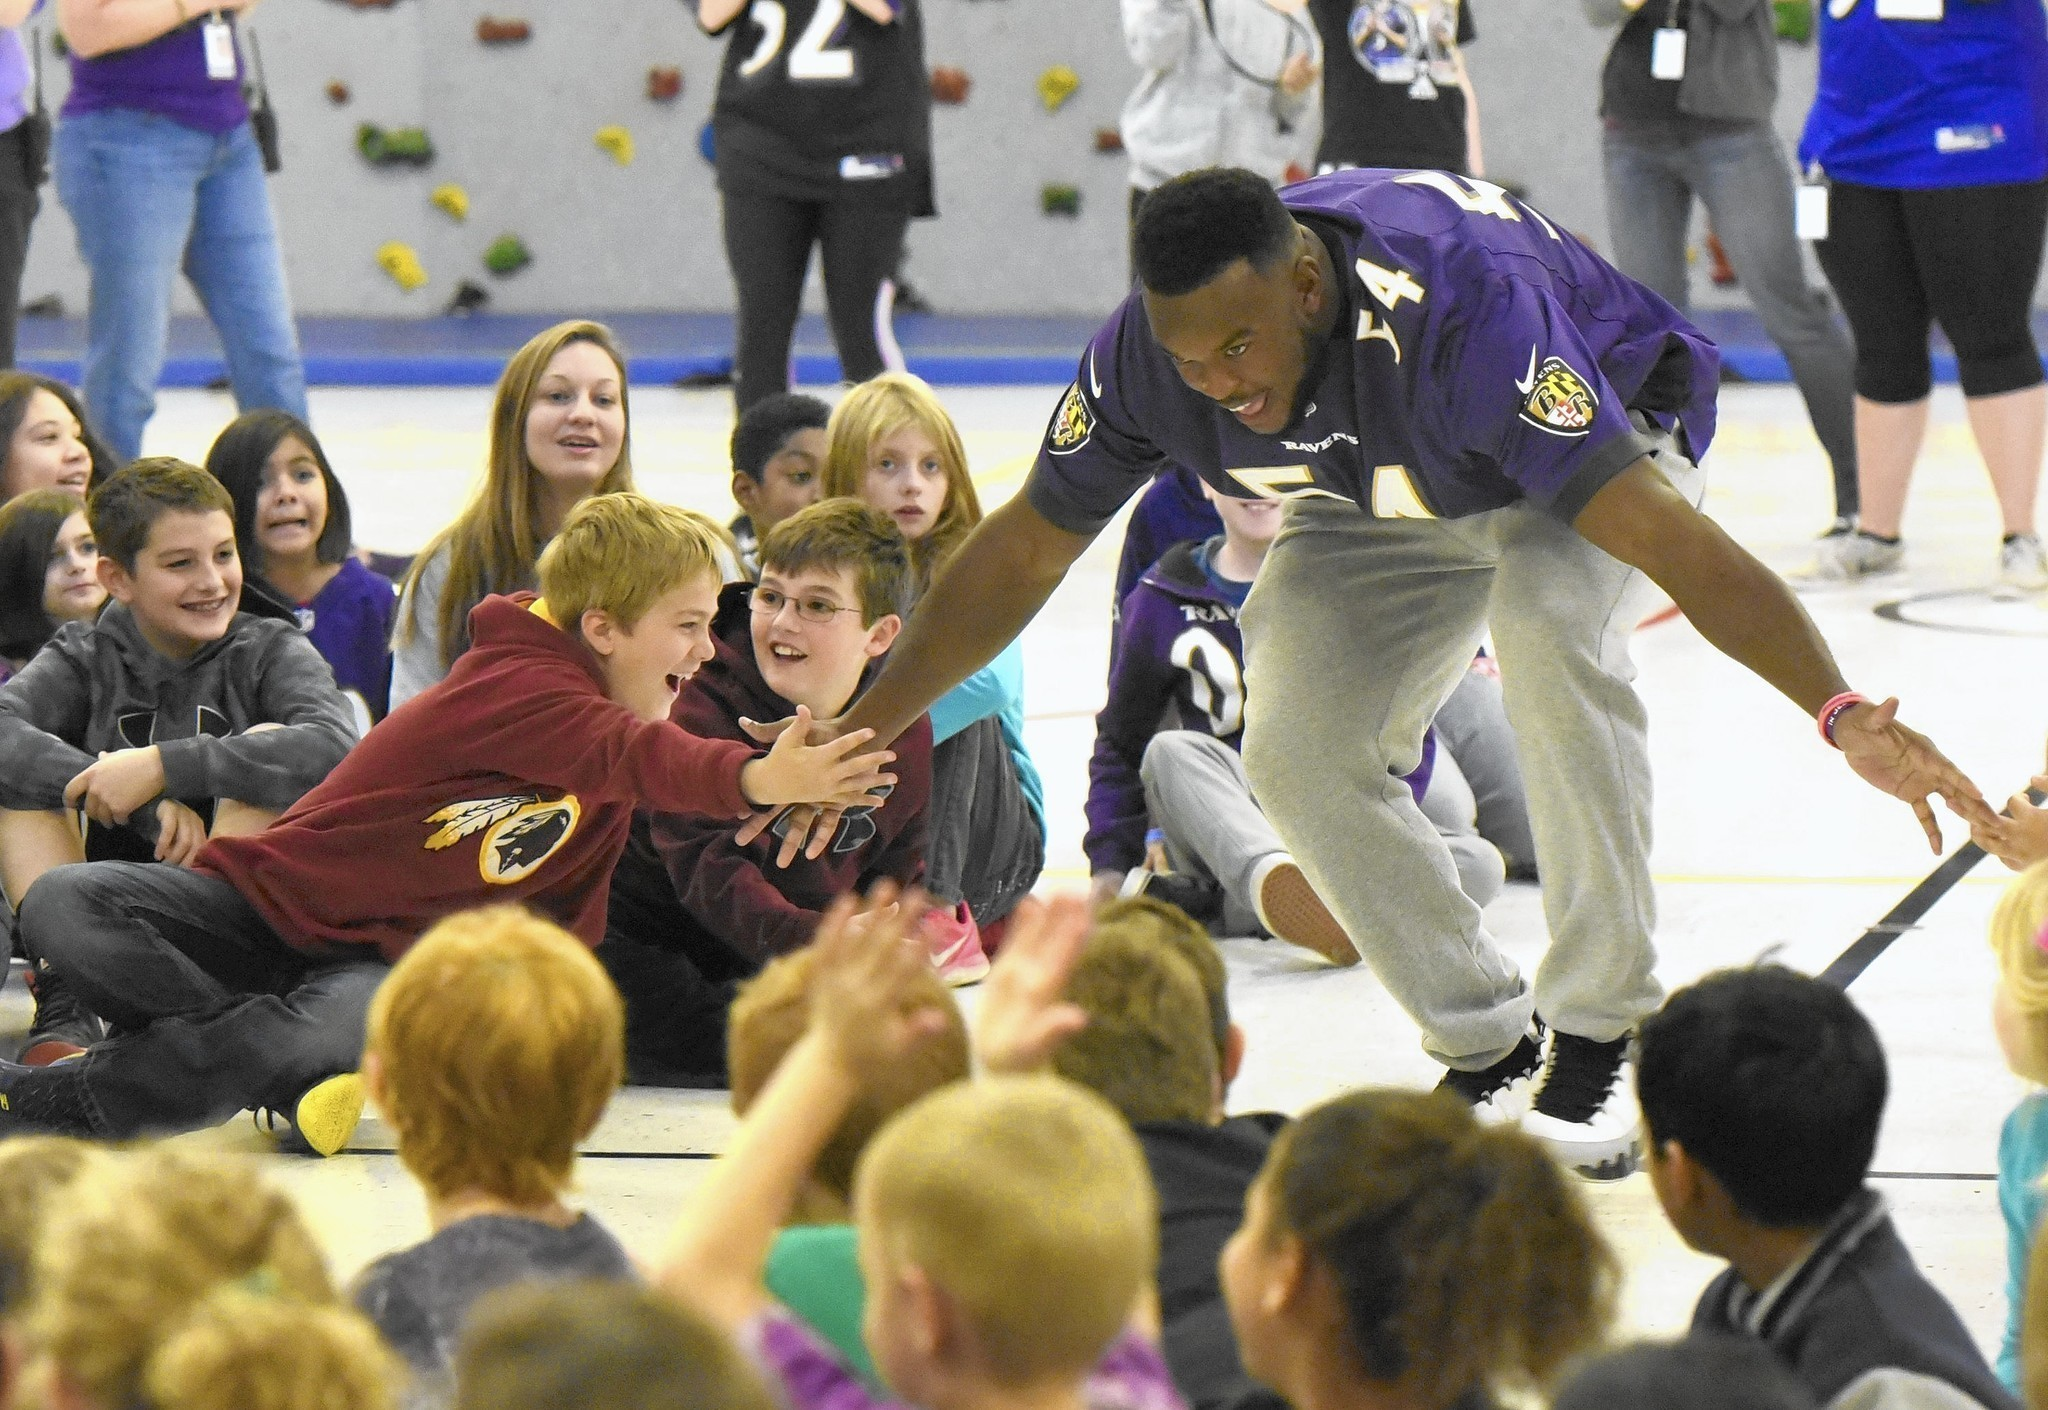 Zach orr retires due to congenital neckspine condition nfl com - Related Zach Orr Articles Robert Moton Kids Stay Fit With Help From Ravens